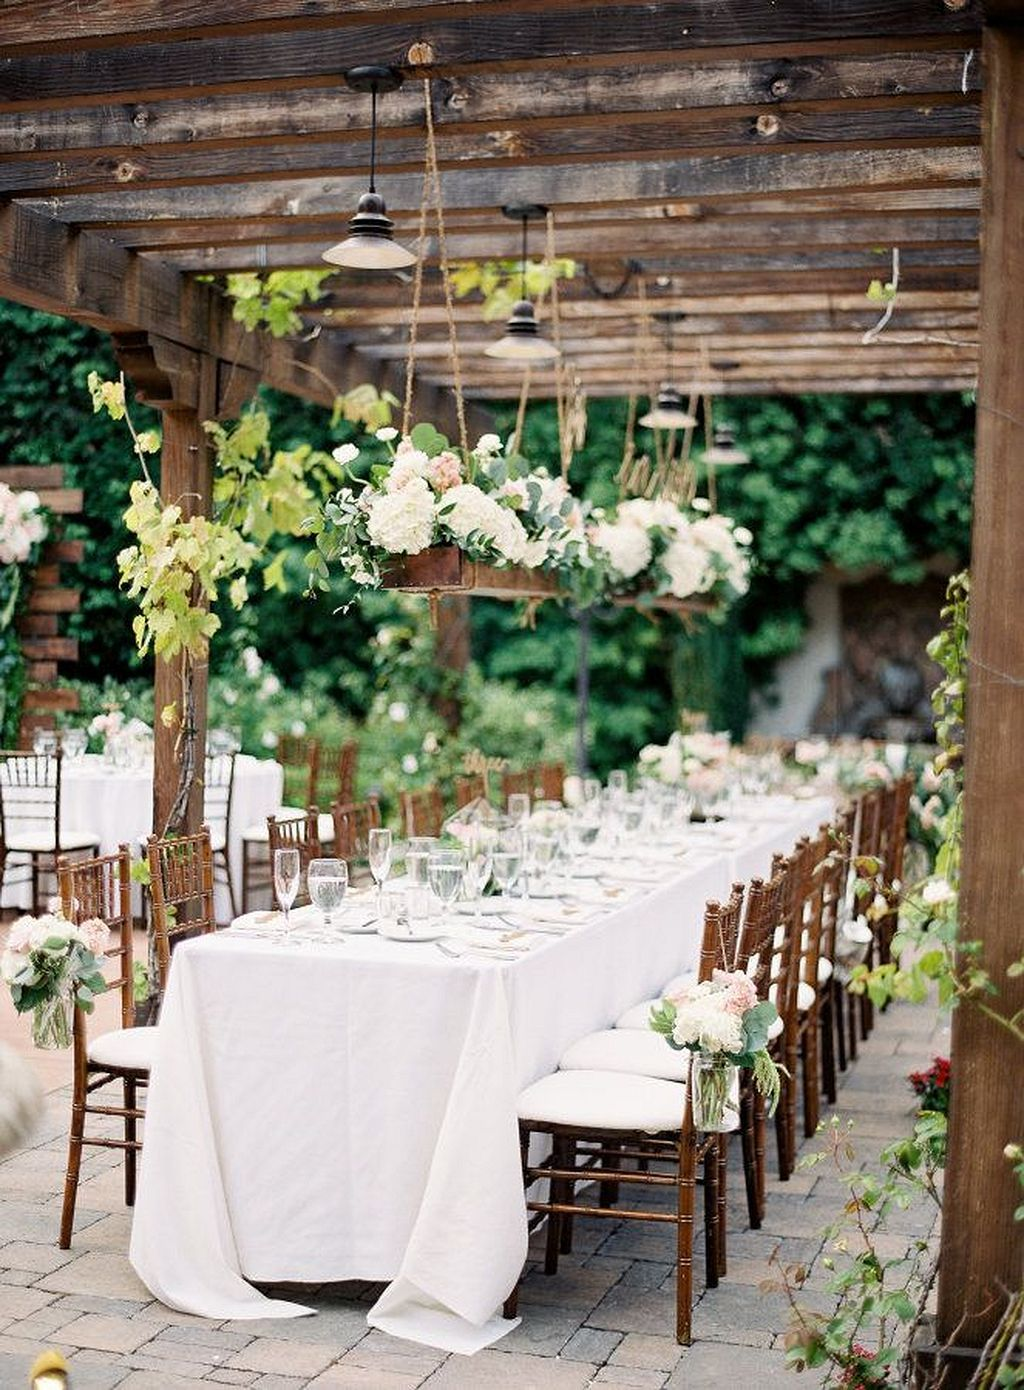 100 Beautiful Garden Wedding Ideas | Pinterest | Garden weddings ...